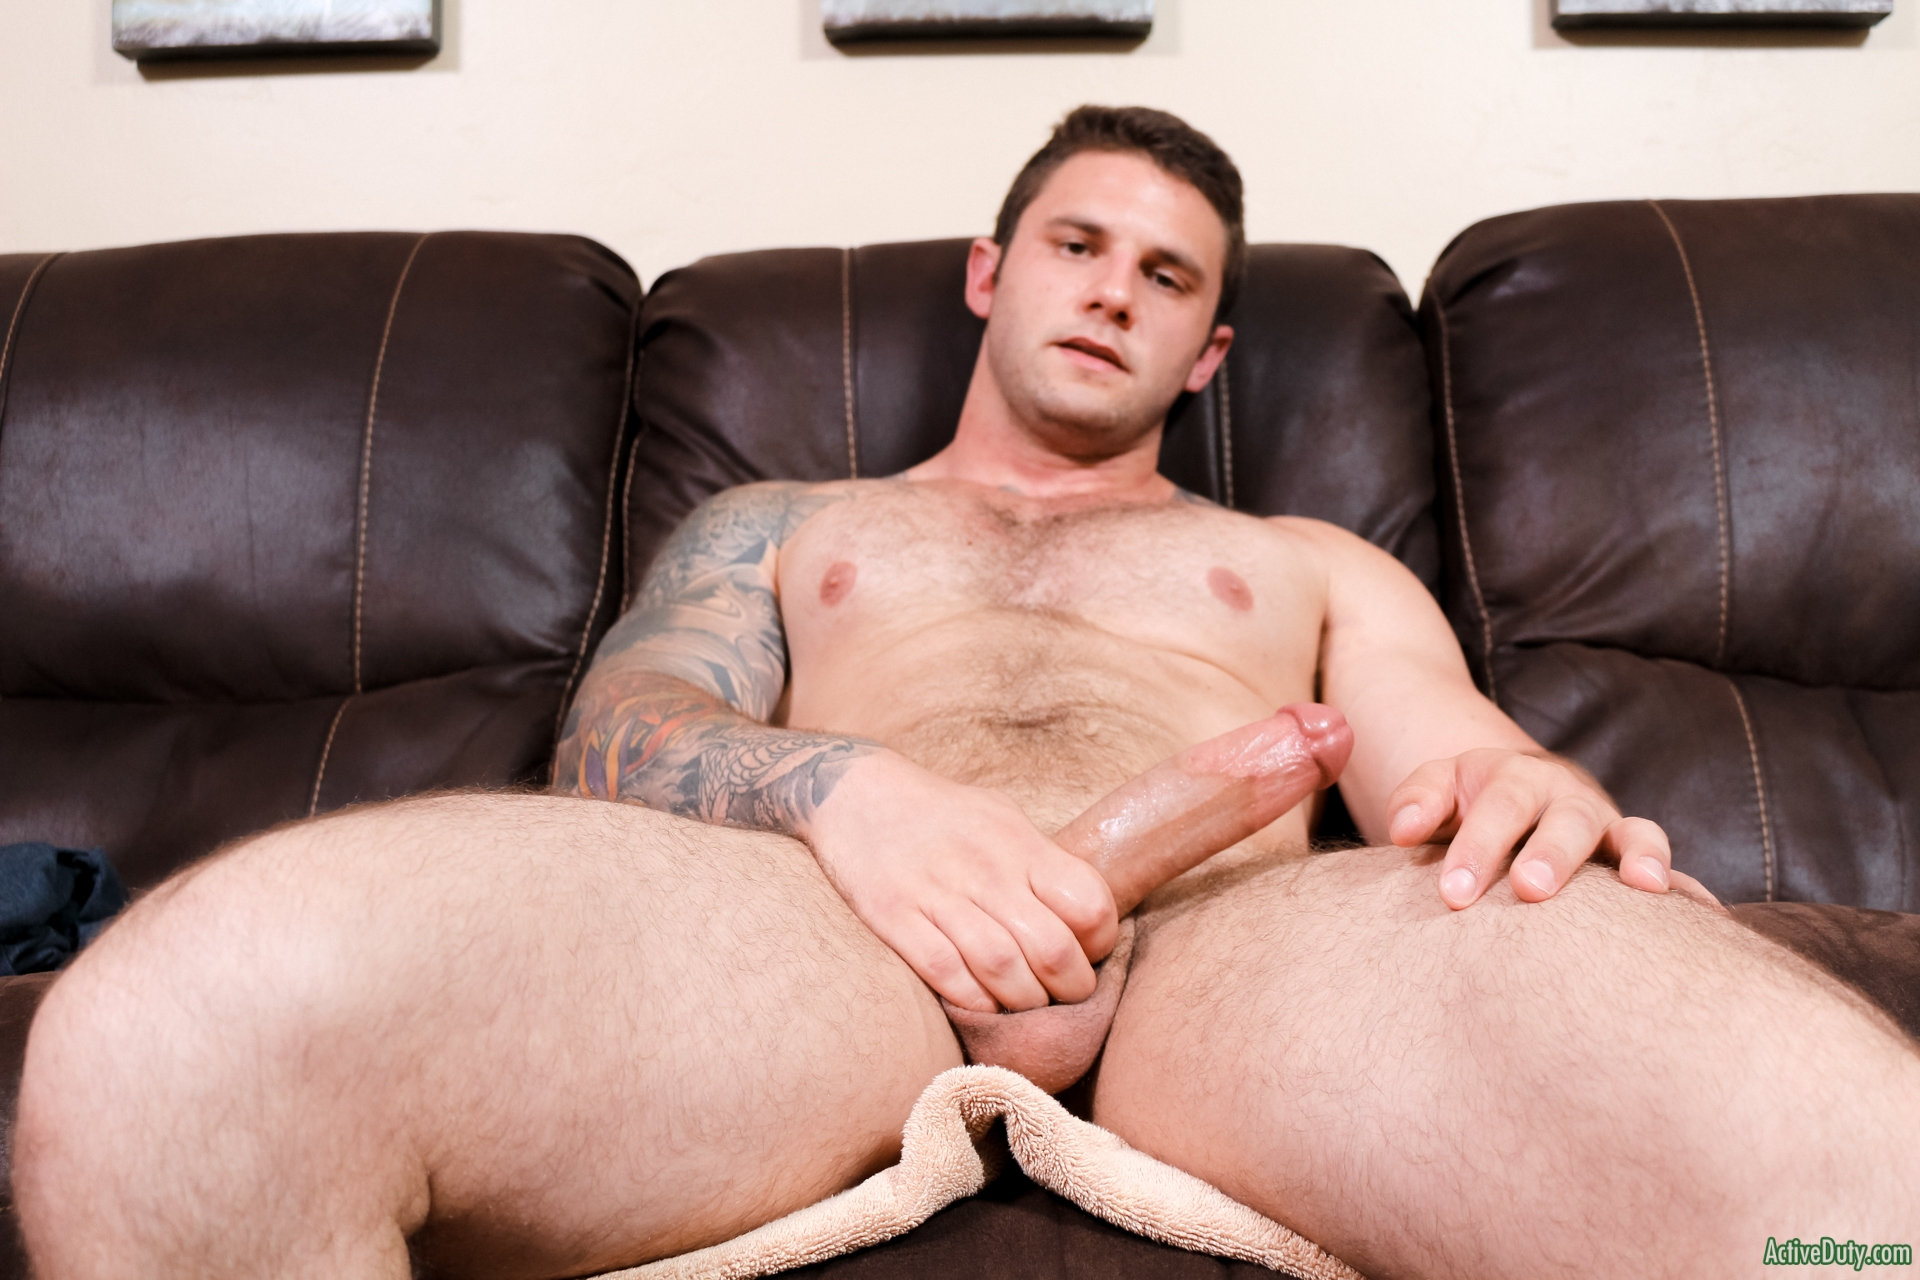 Activeduty sexy quentin in military sandwich 8